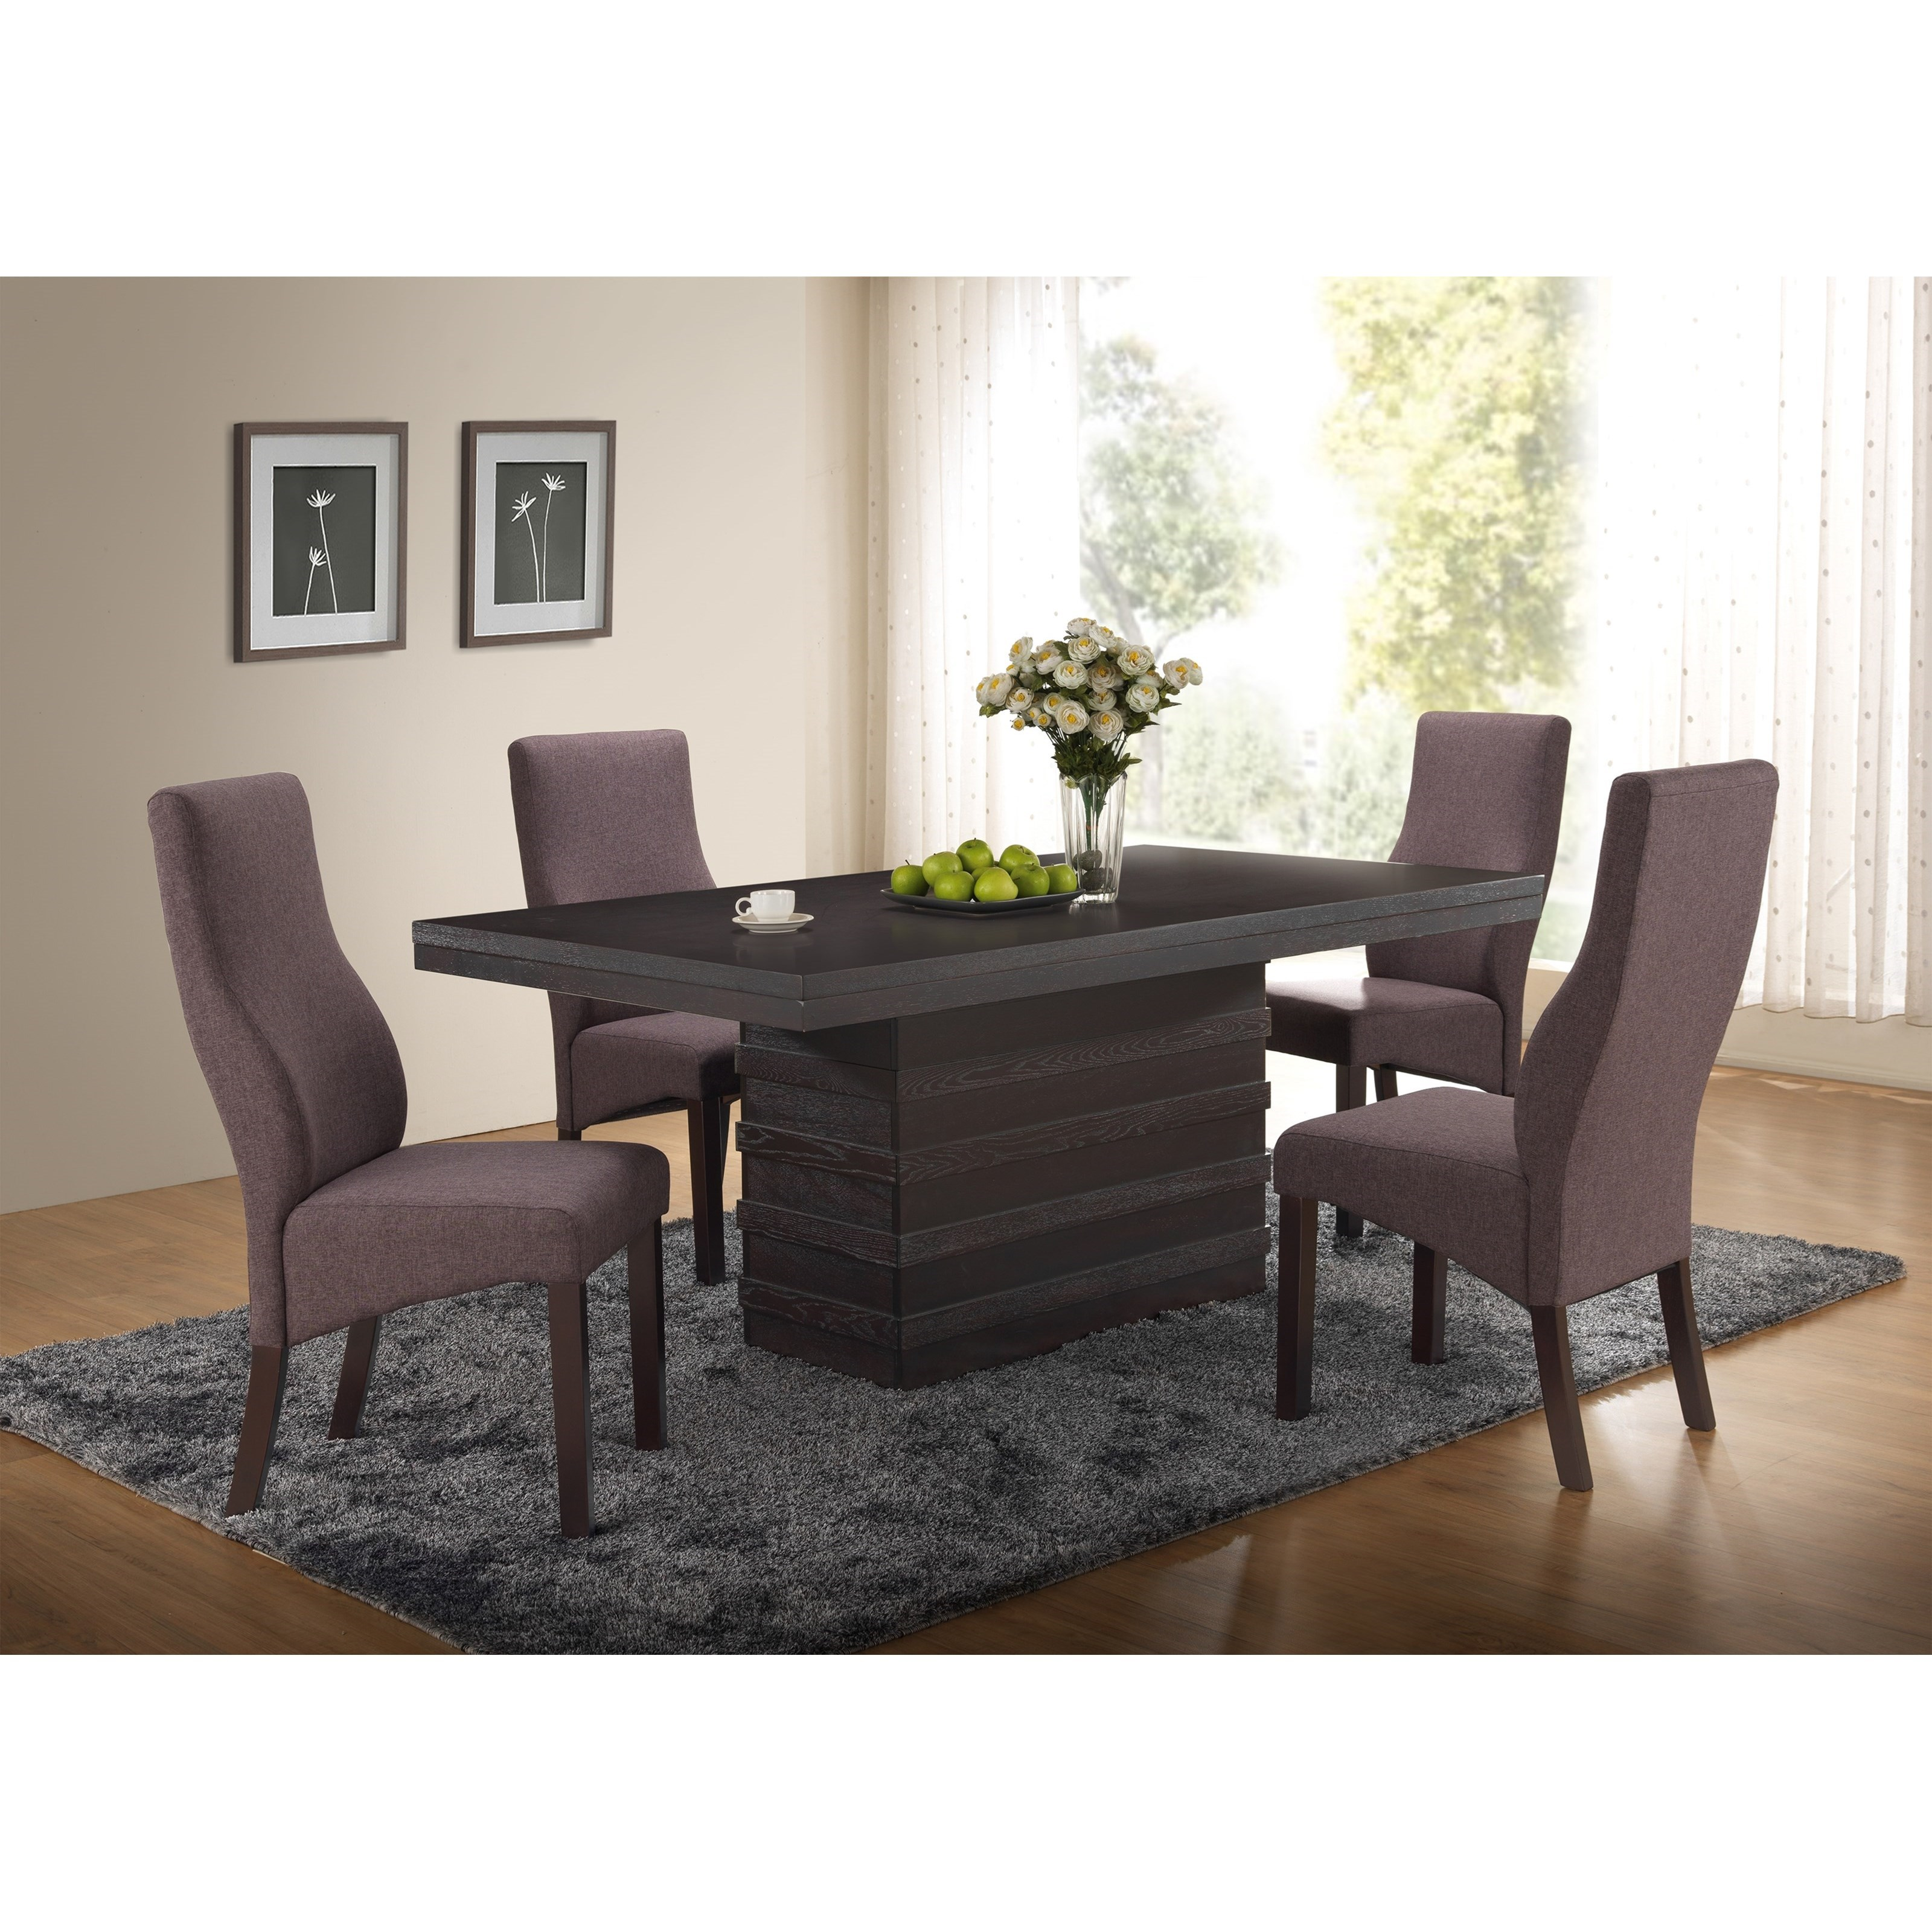 New Classic Natasha 5 Piece Boris Dining Table Set  - Item Number: D3972-10W+4x20CH